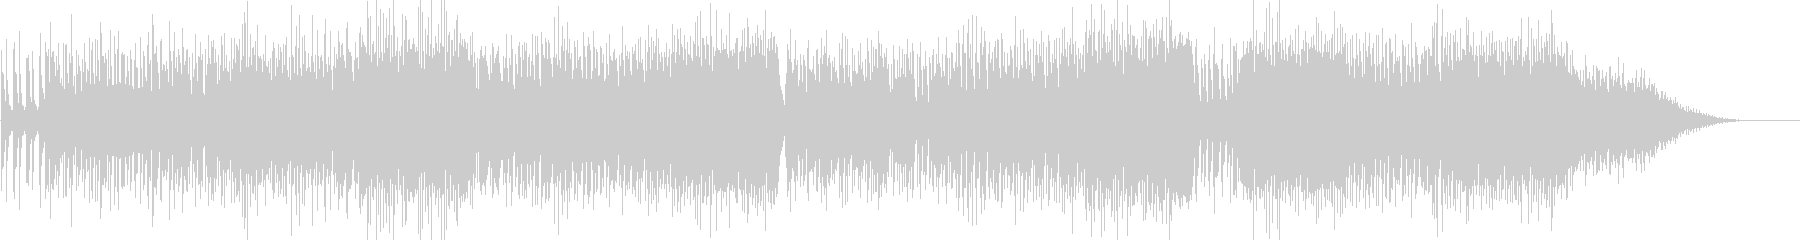 Cool impression piano dance pops's unreproduced waveform